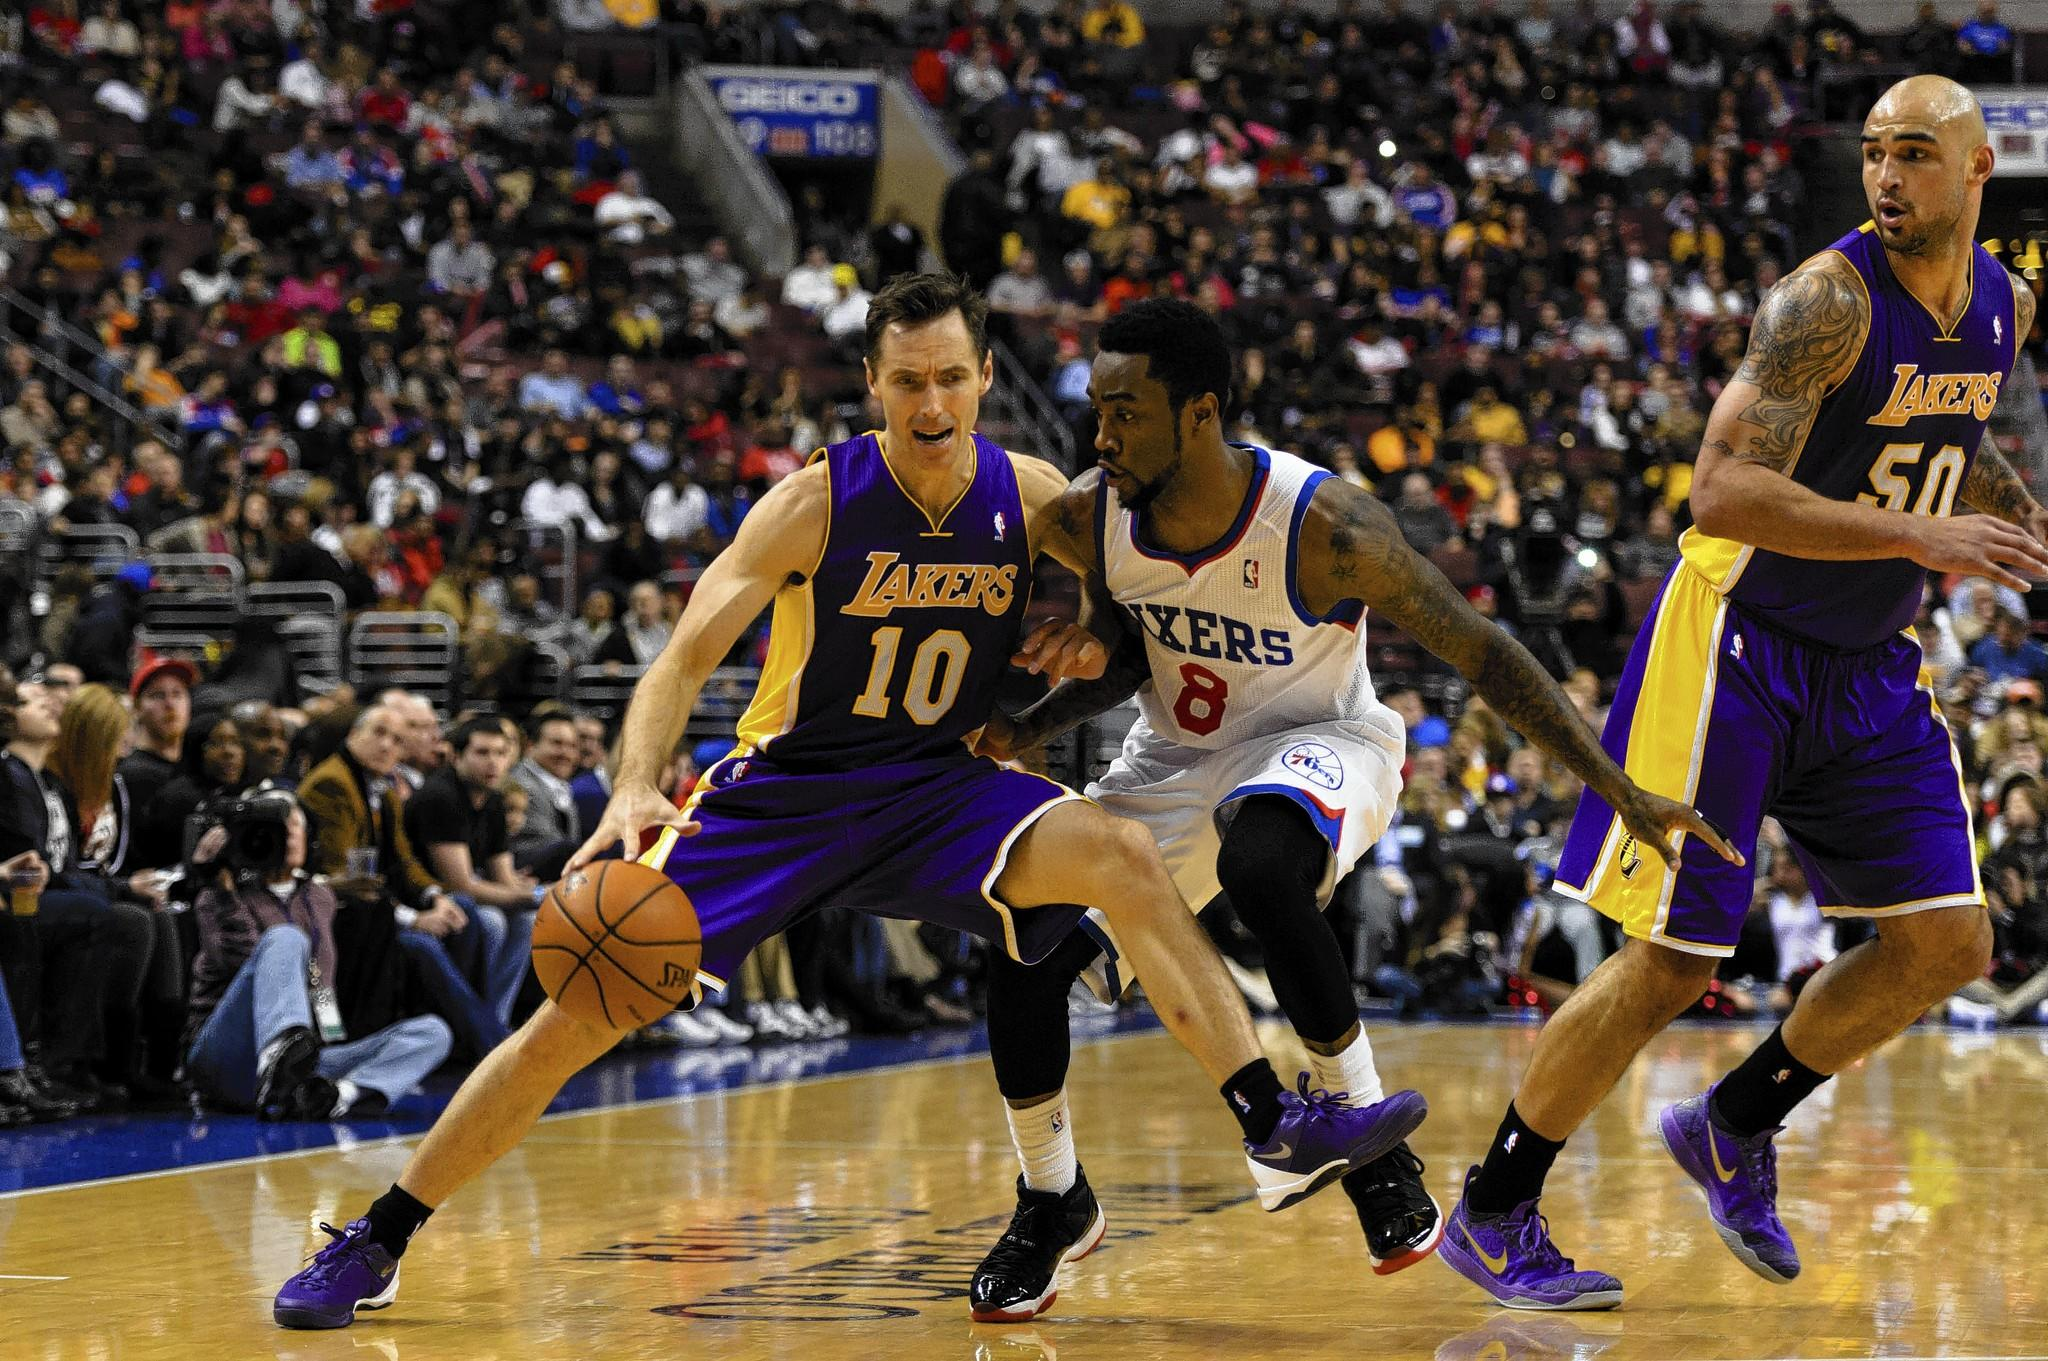 Feb 7, 2014; Philadelphia, PA, USA; Los Angeles Lakers guard Steve Nash (10) is defended by Philadelphia 76ers guard Tony Wroten (8) during the second quarter at the Wells Fargo Center.